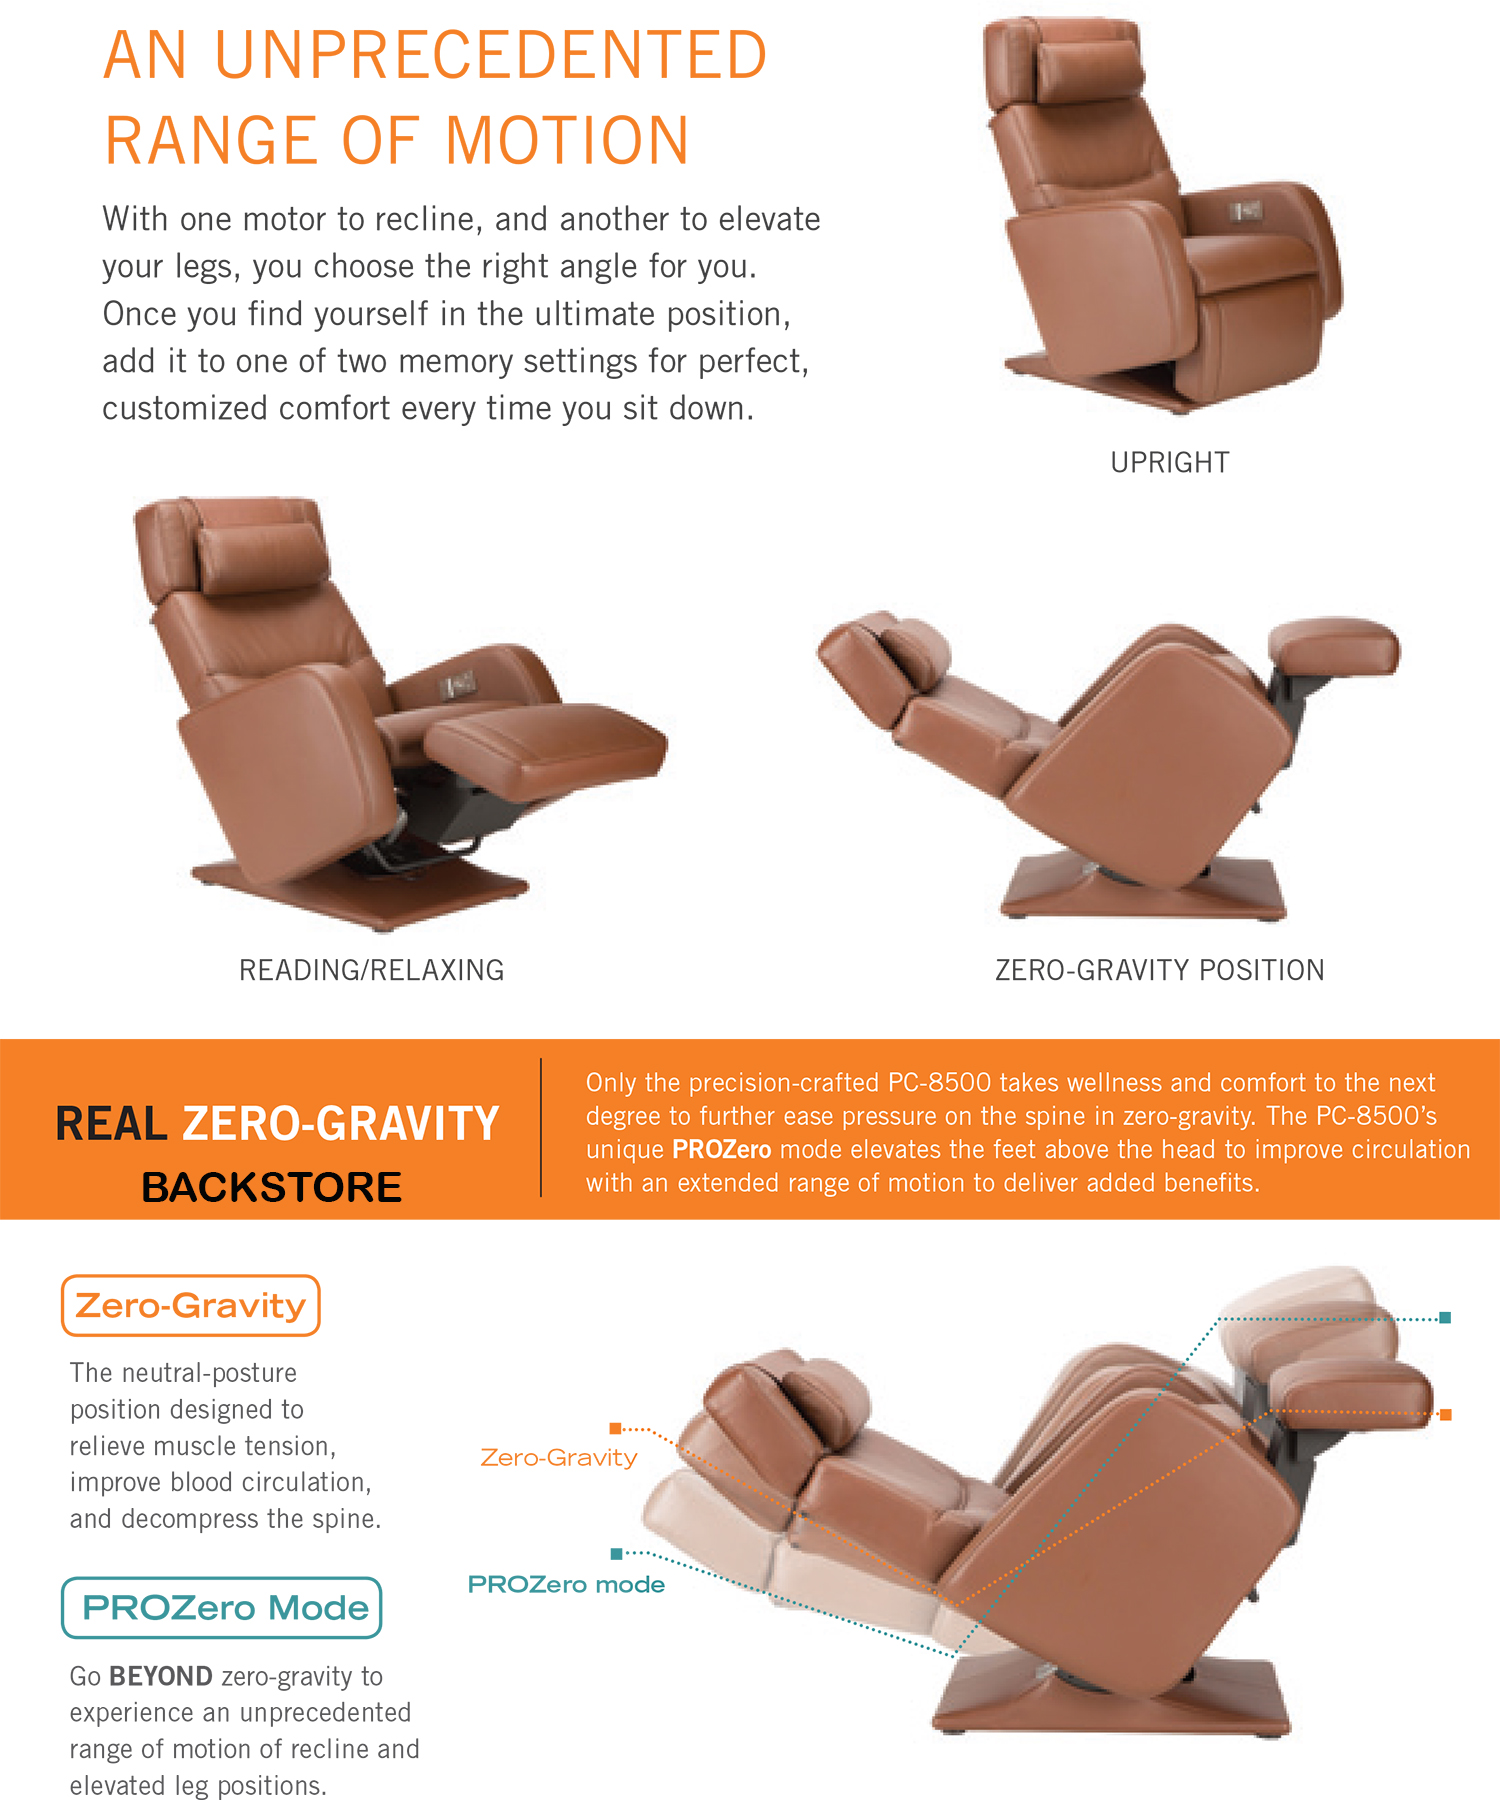 Features Of The PC 8500 Zero Gravity Perfect Chair Recliner From Human Touch